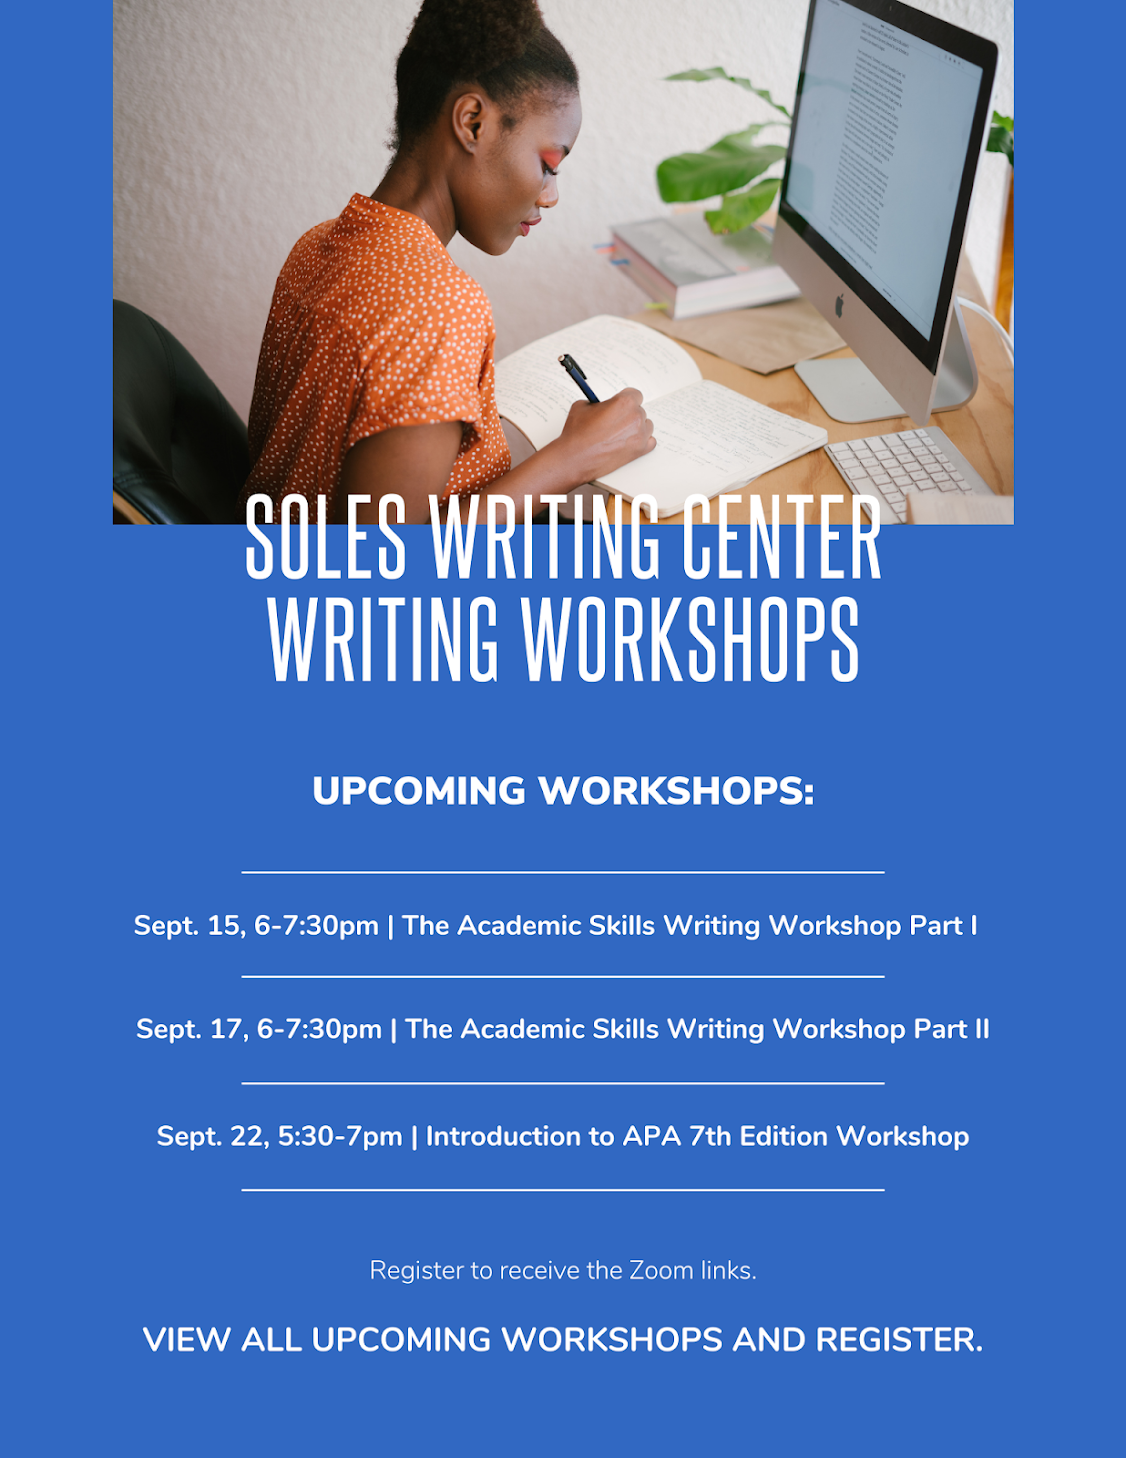 SOLES Writing Center Writing Workshops